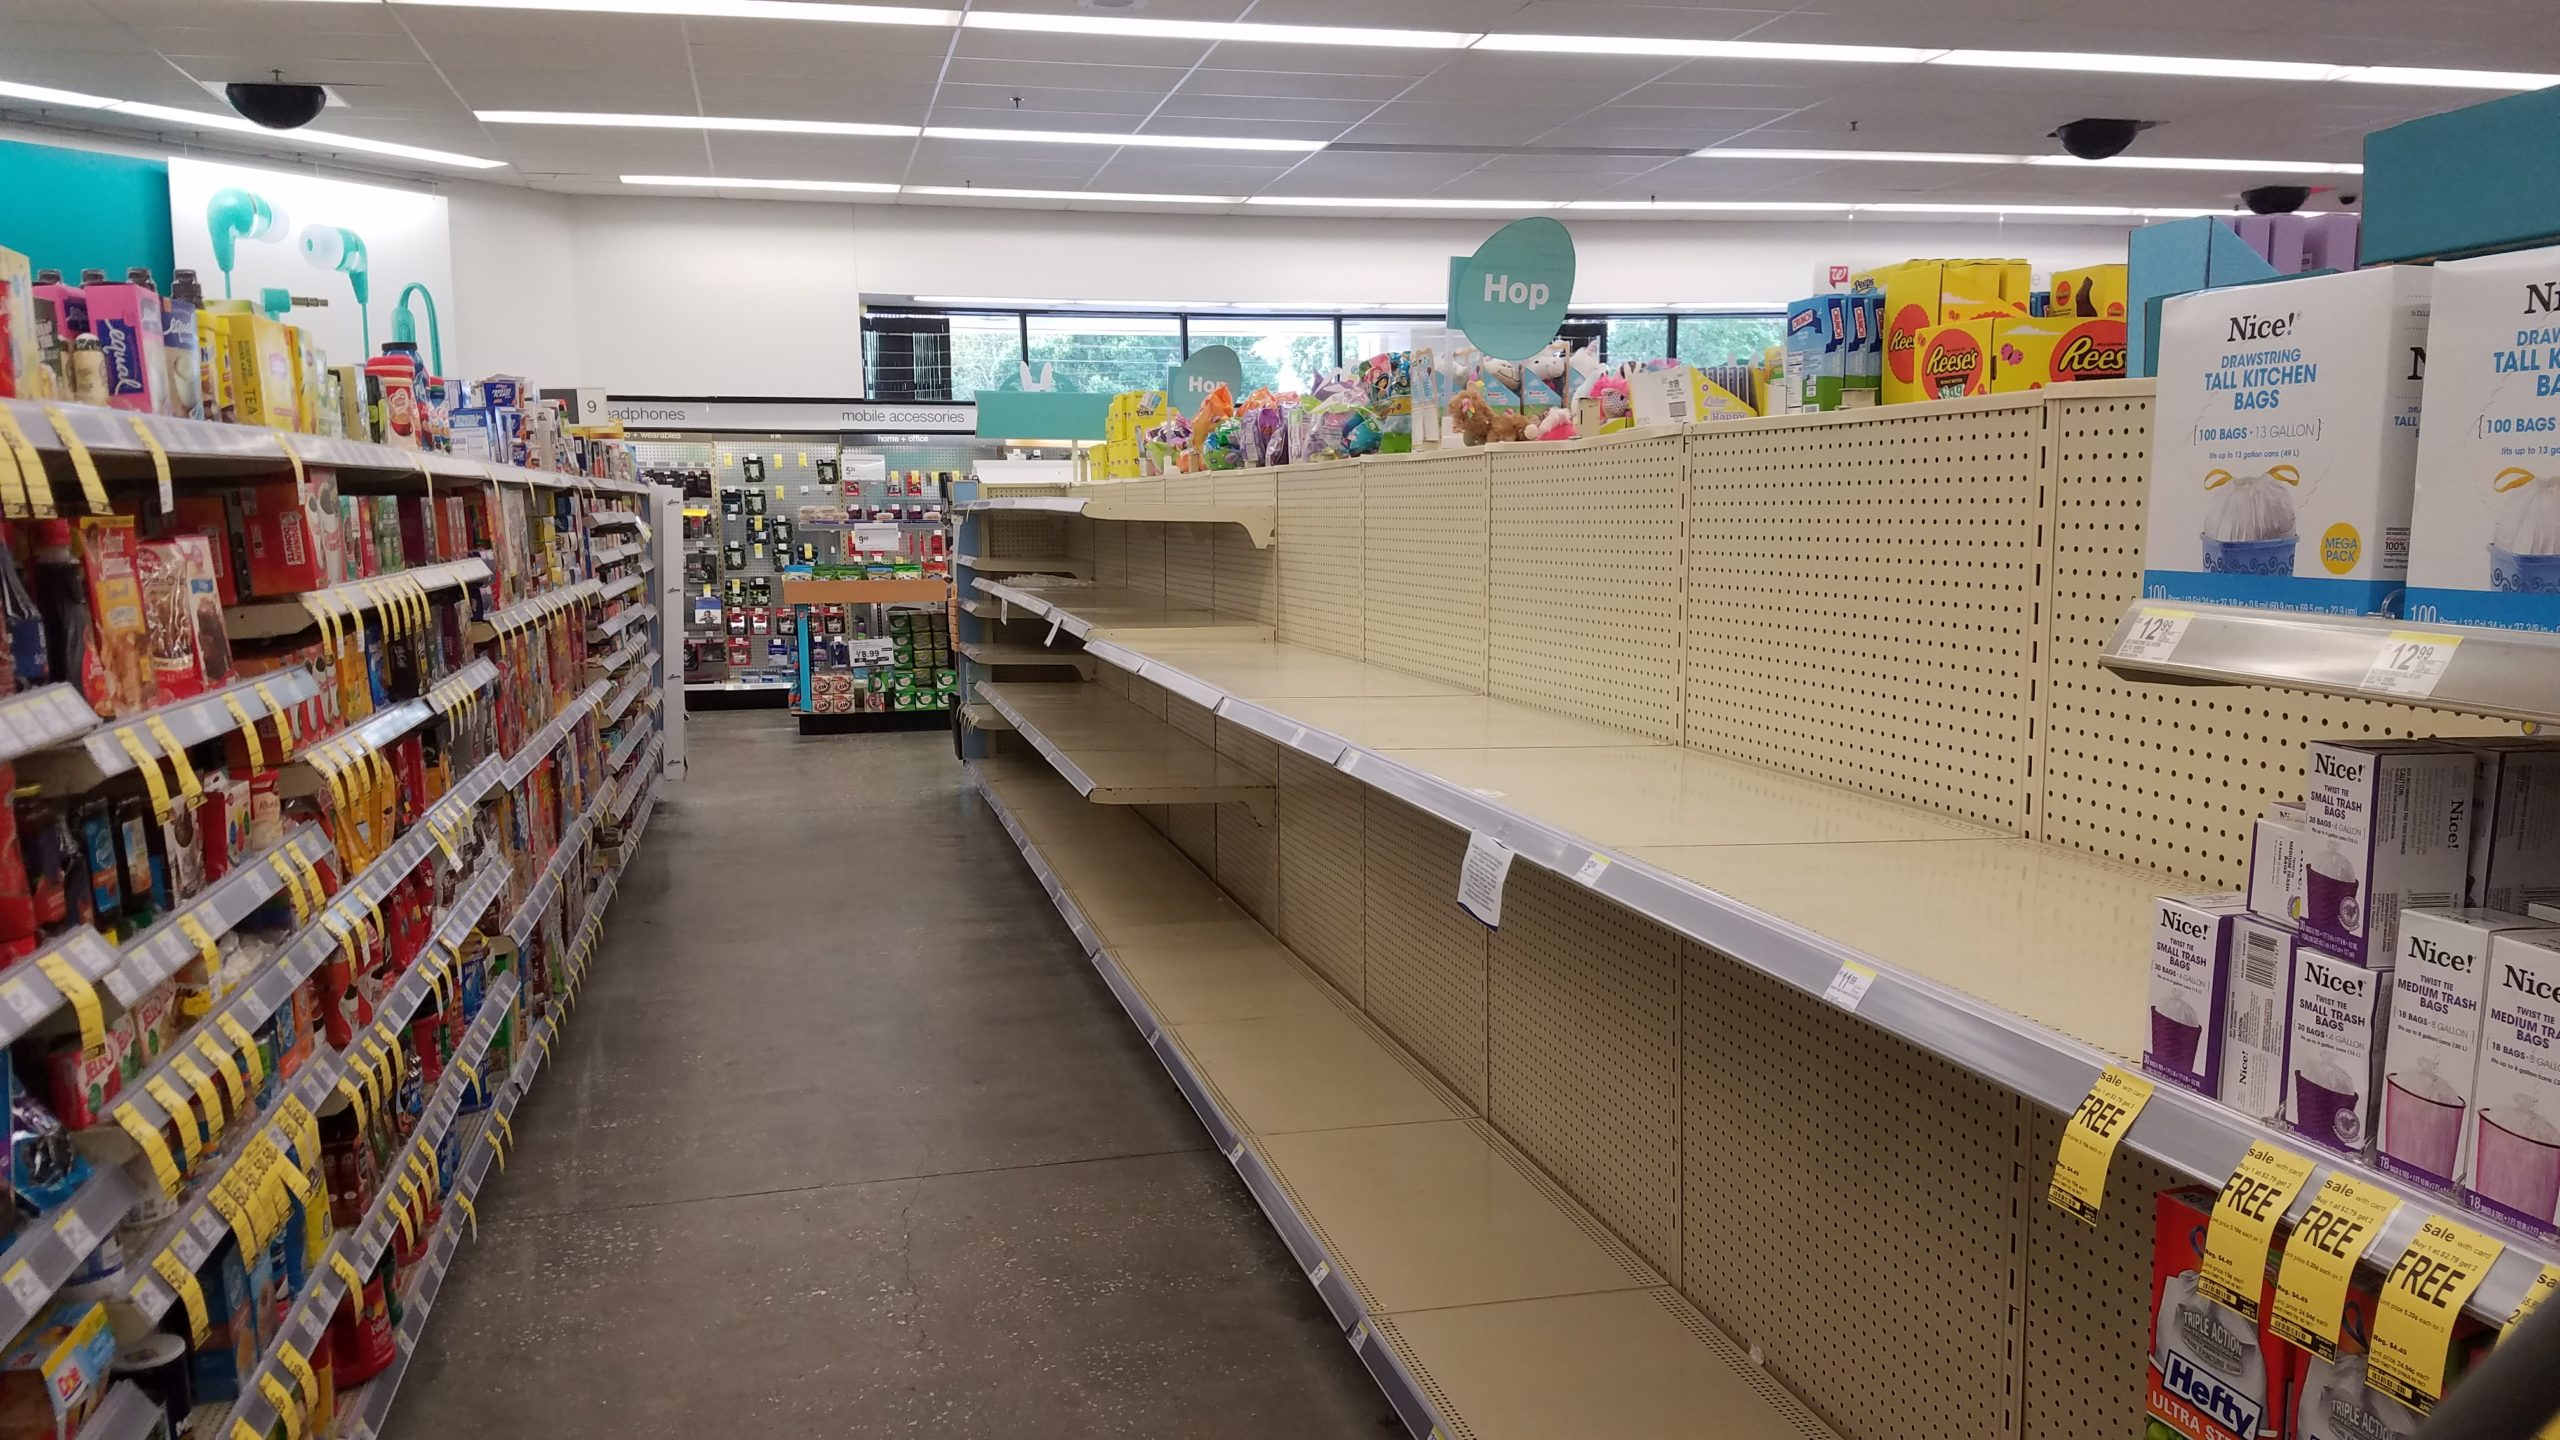 Empty store shelves with no toilet paper or paper towels because of hoarding during coronavirus emergency